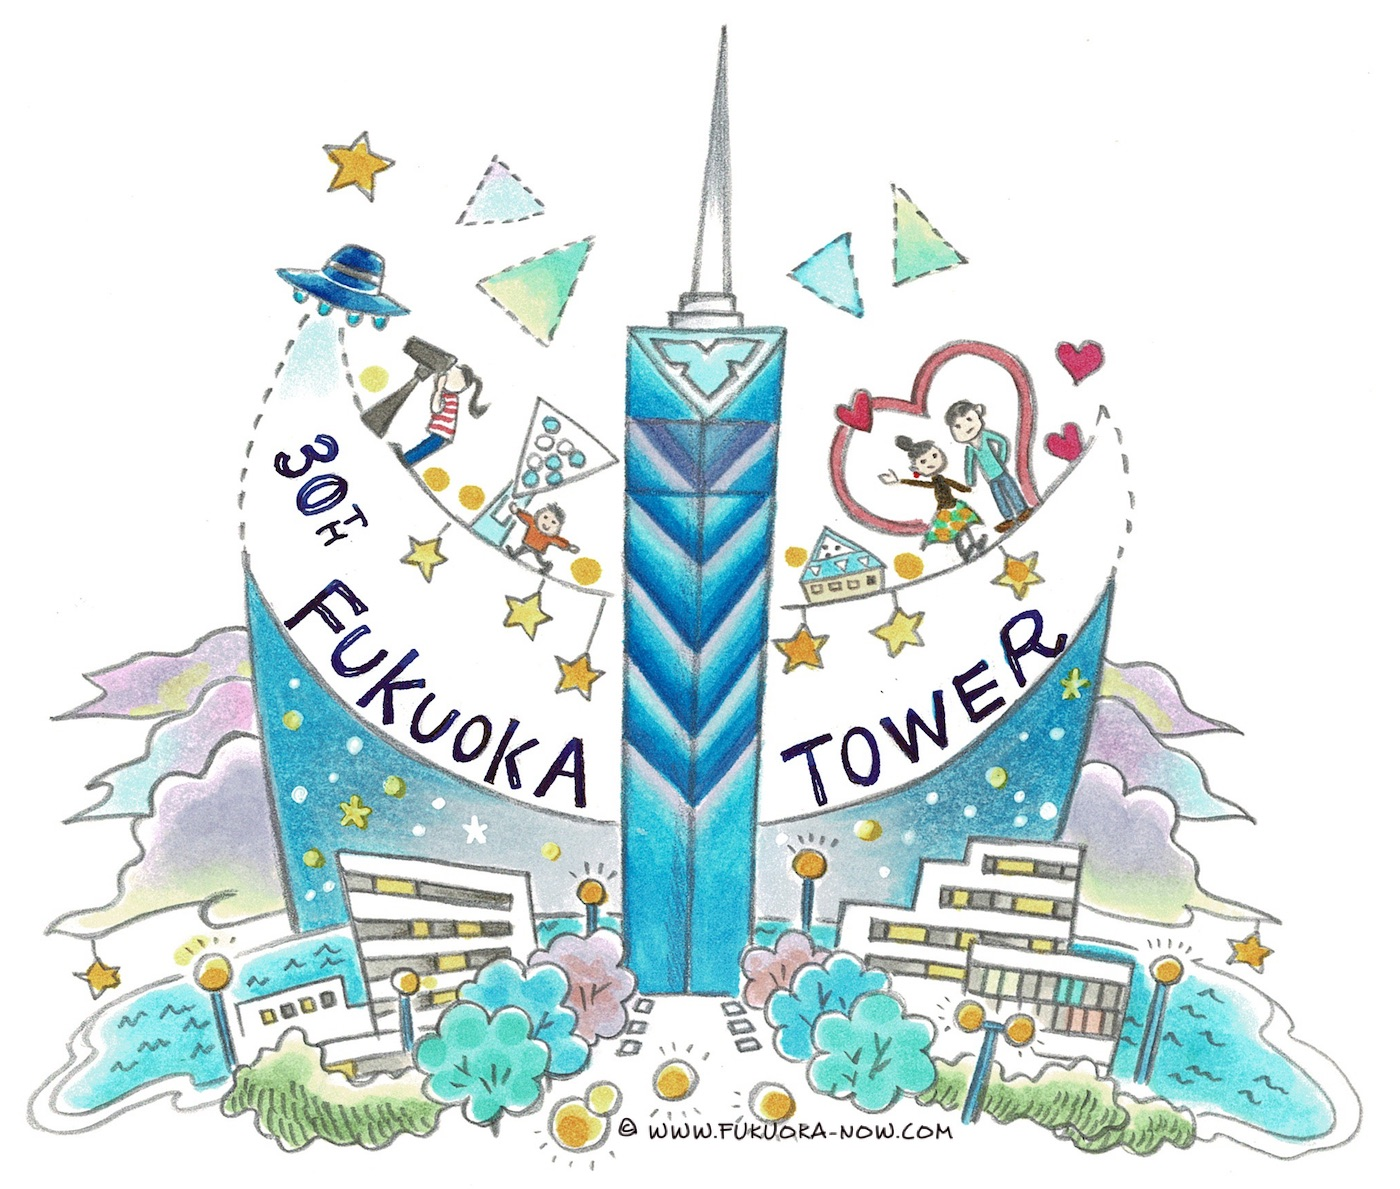 Fukuoka Tower, 30th anniversary